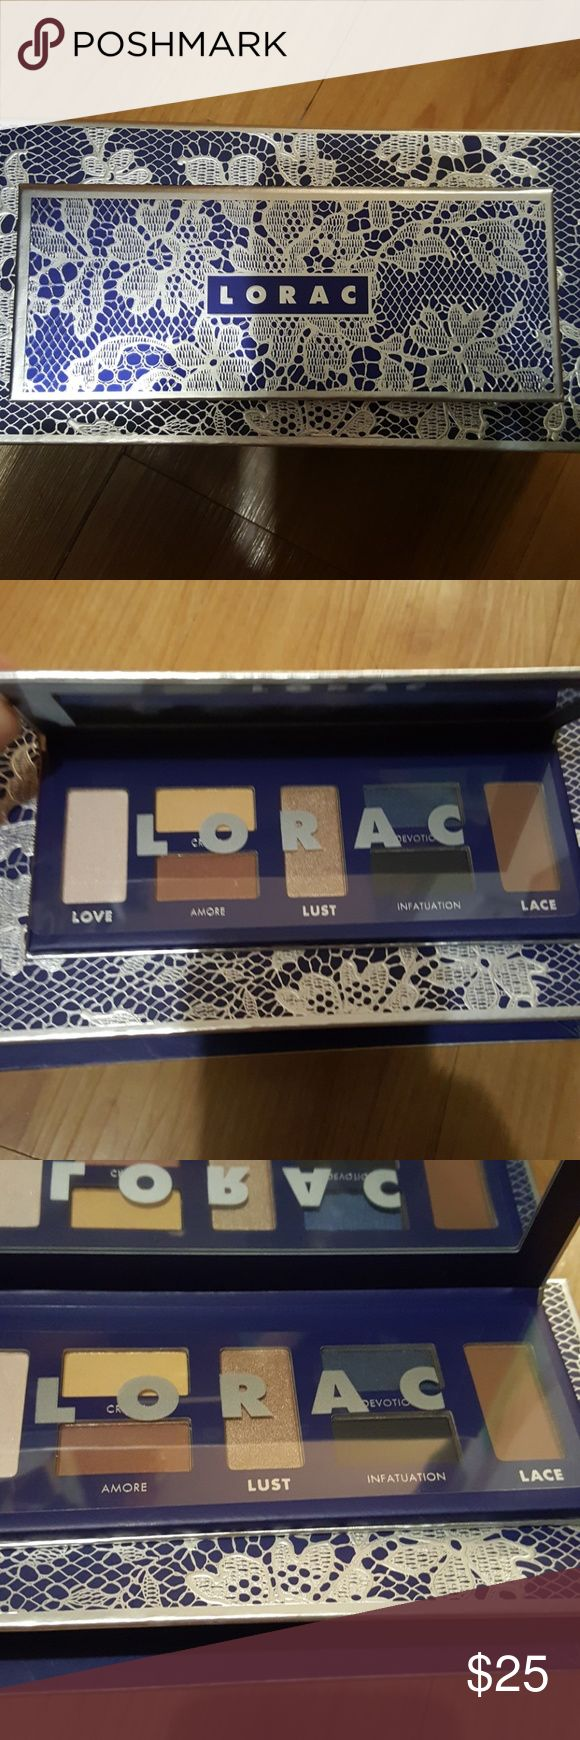 🦃SALE‼️NWTB 100%AUTHENTIC LIMITED EDITION LORAC LORAC Love, Lust & Love use this Beautiful sleek eyeshadow palette that contains 5 universally flattering dhimmer shades and 2 essential matte shades to enhance and romanticize your beautiful eyes because they are the windows of your soul LORAC Makeup Eyeshadow